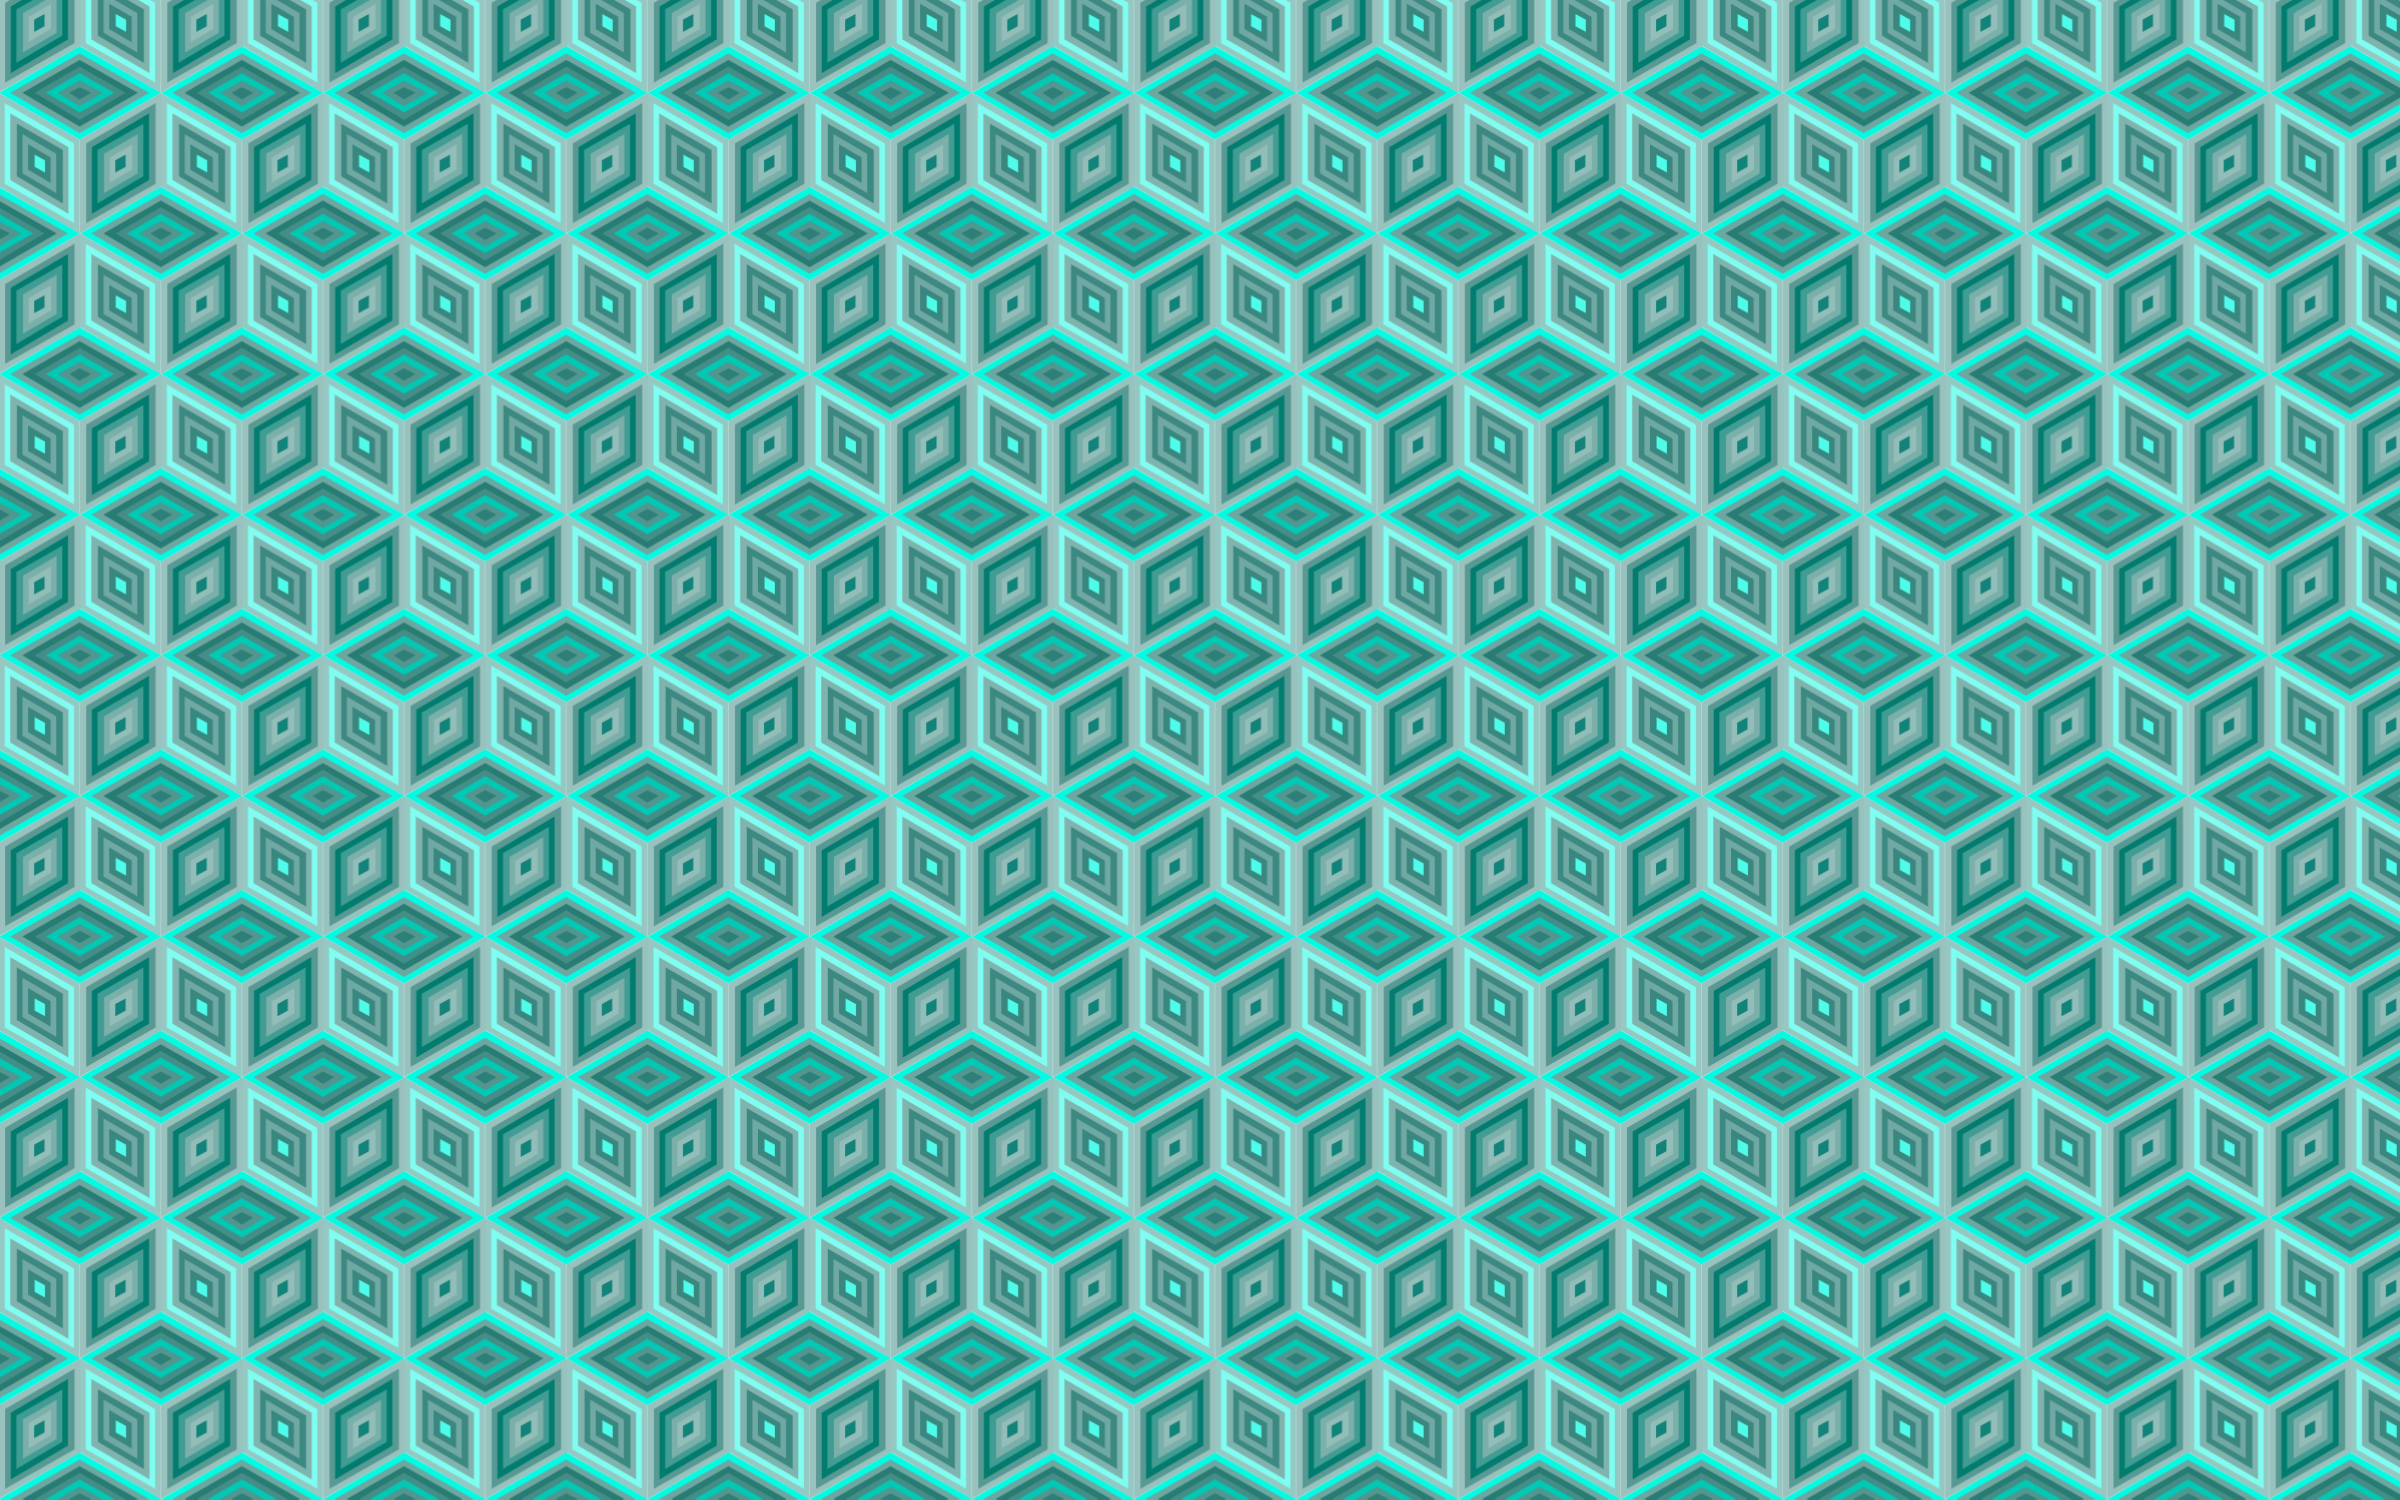 Seamless Monochromatic Isometric Cube Pattern by GDJ